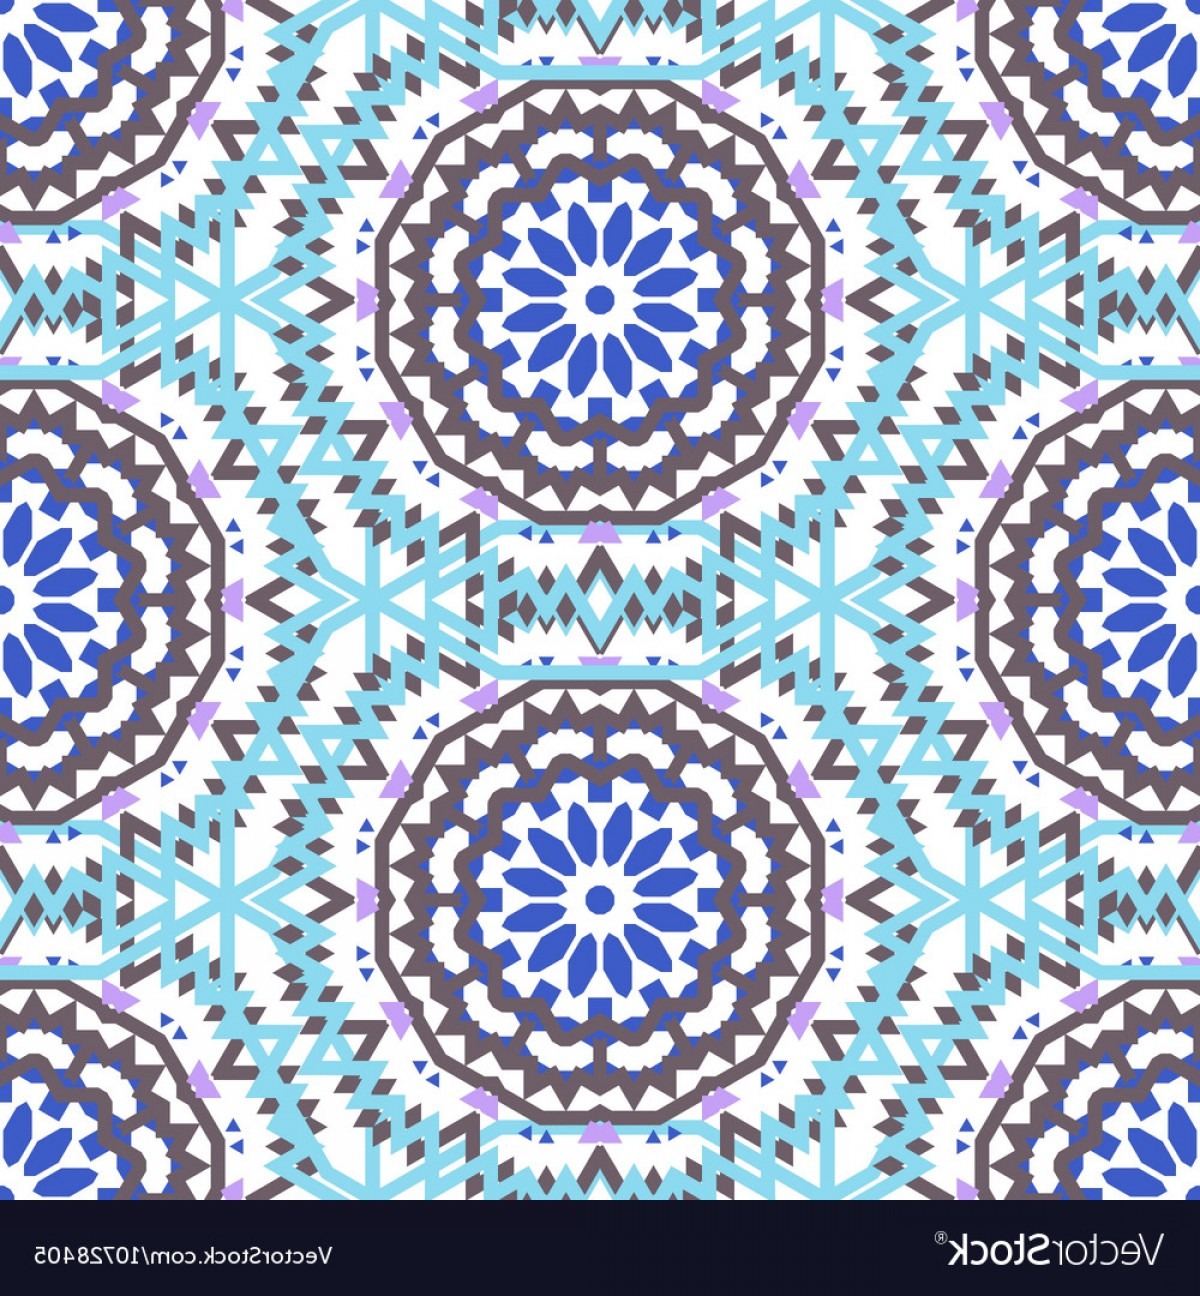 Bohemian Flowers Vector: Bohemian Pattern With Big Abstract Flowers Vector